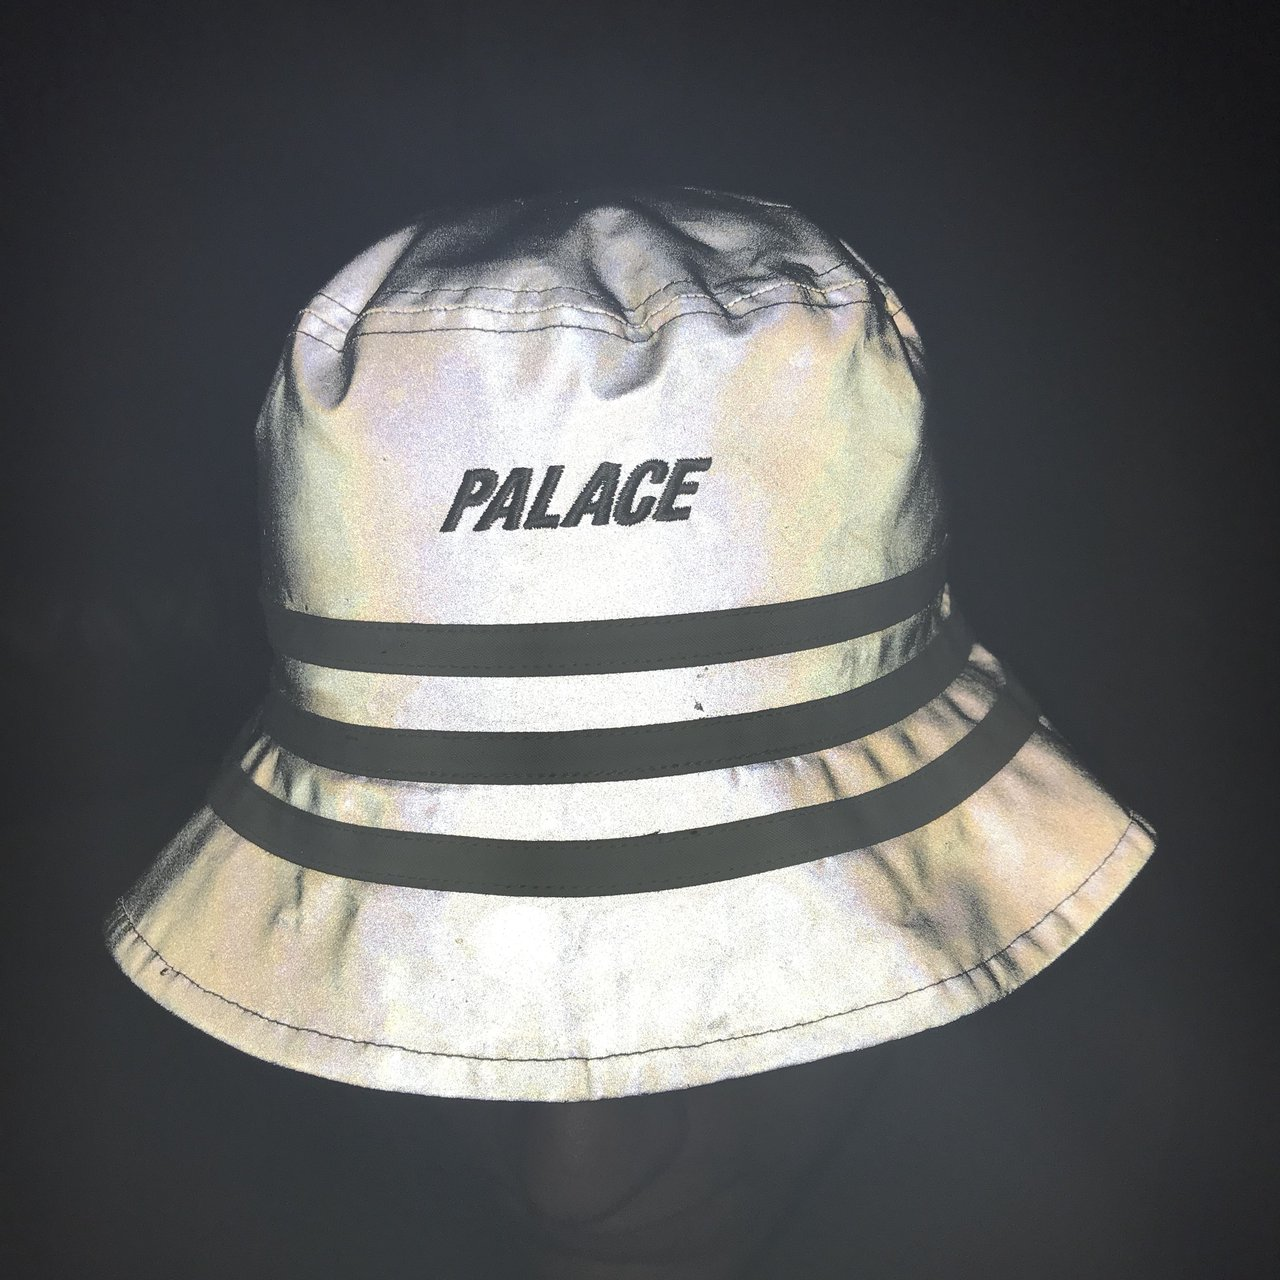 63e842dc1a810 Adidas x Palace Reflective Bucket Hat Size S M Has some on - Depop